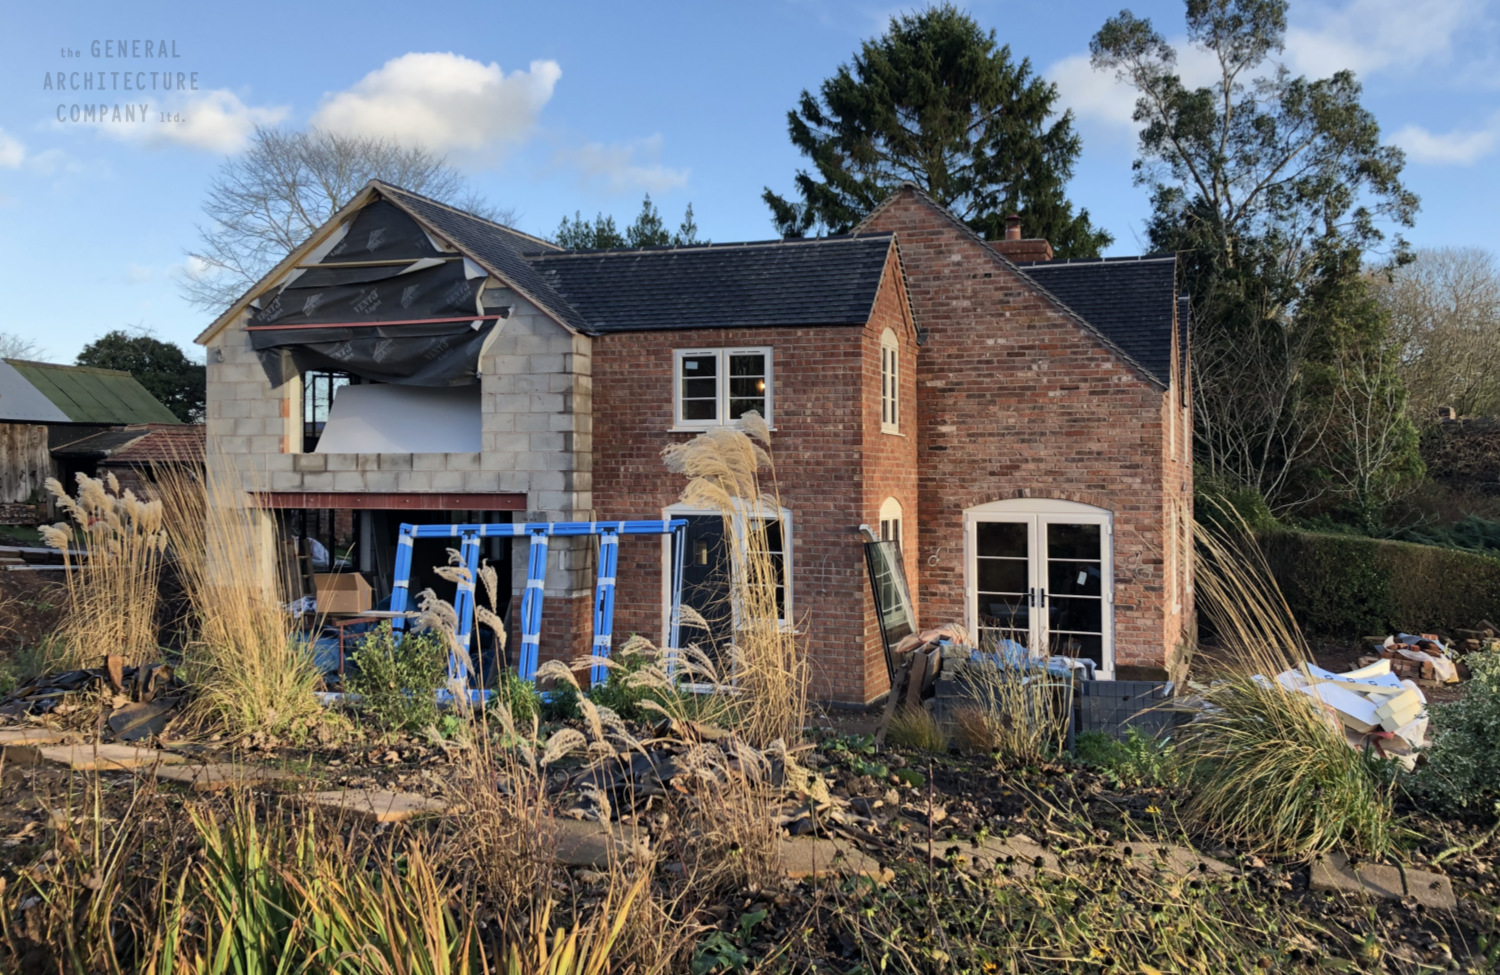 Project Update From Eccleshall, Stafford